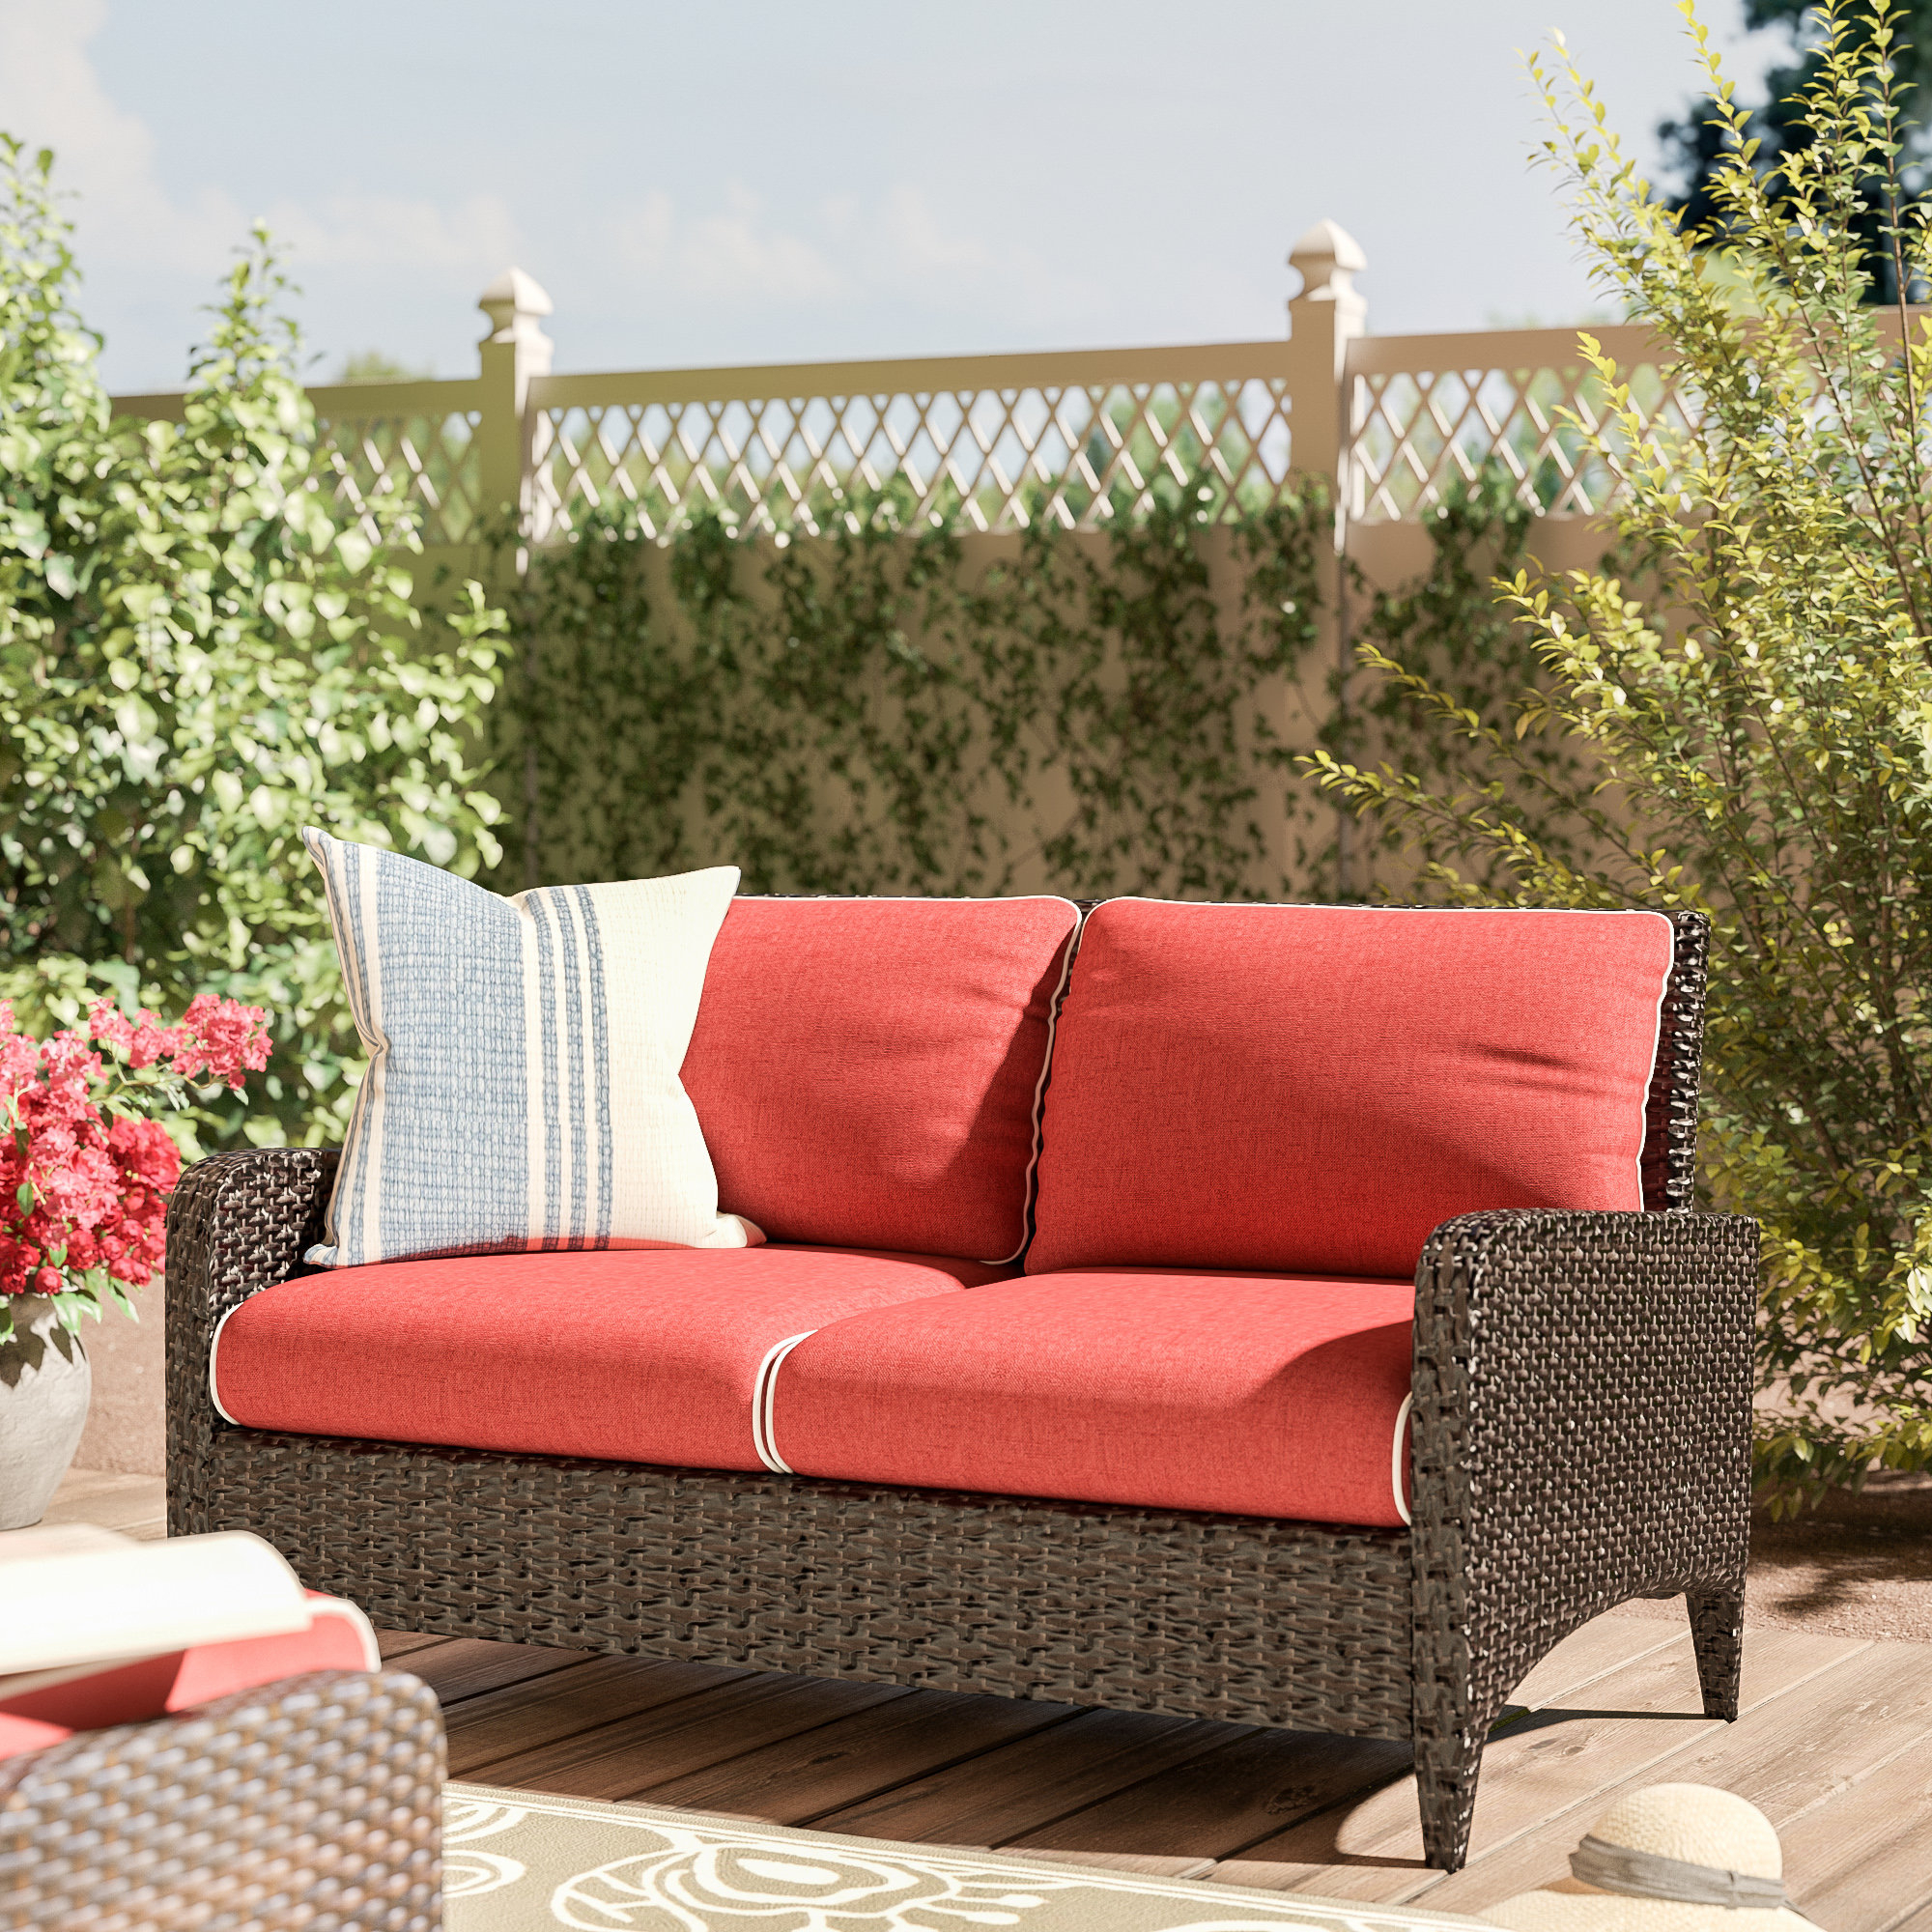 Wayfair With Preferred Mullenax Outdoor Loveseats With Cushions (View 14 of 20)